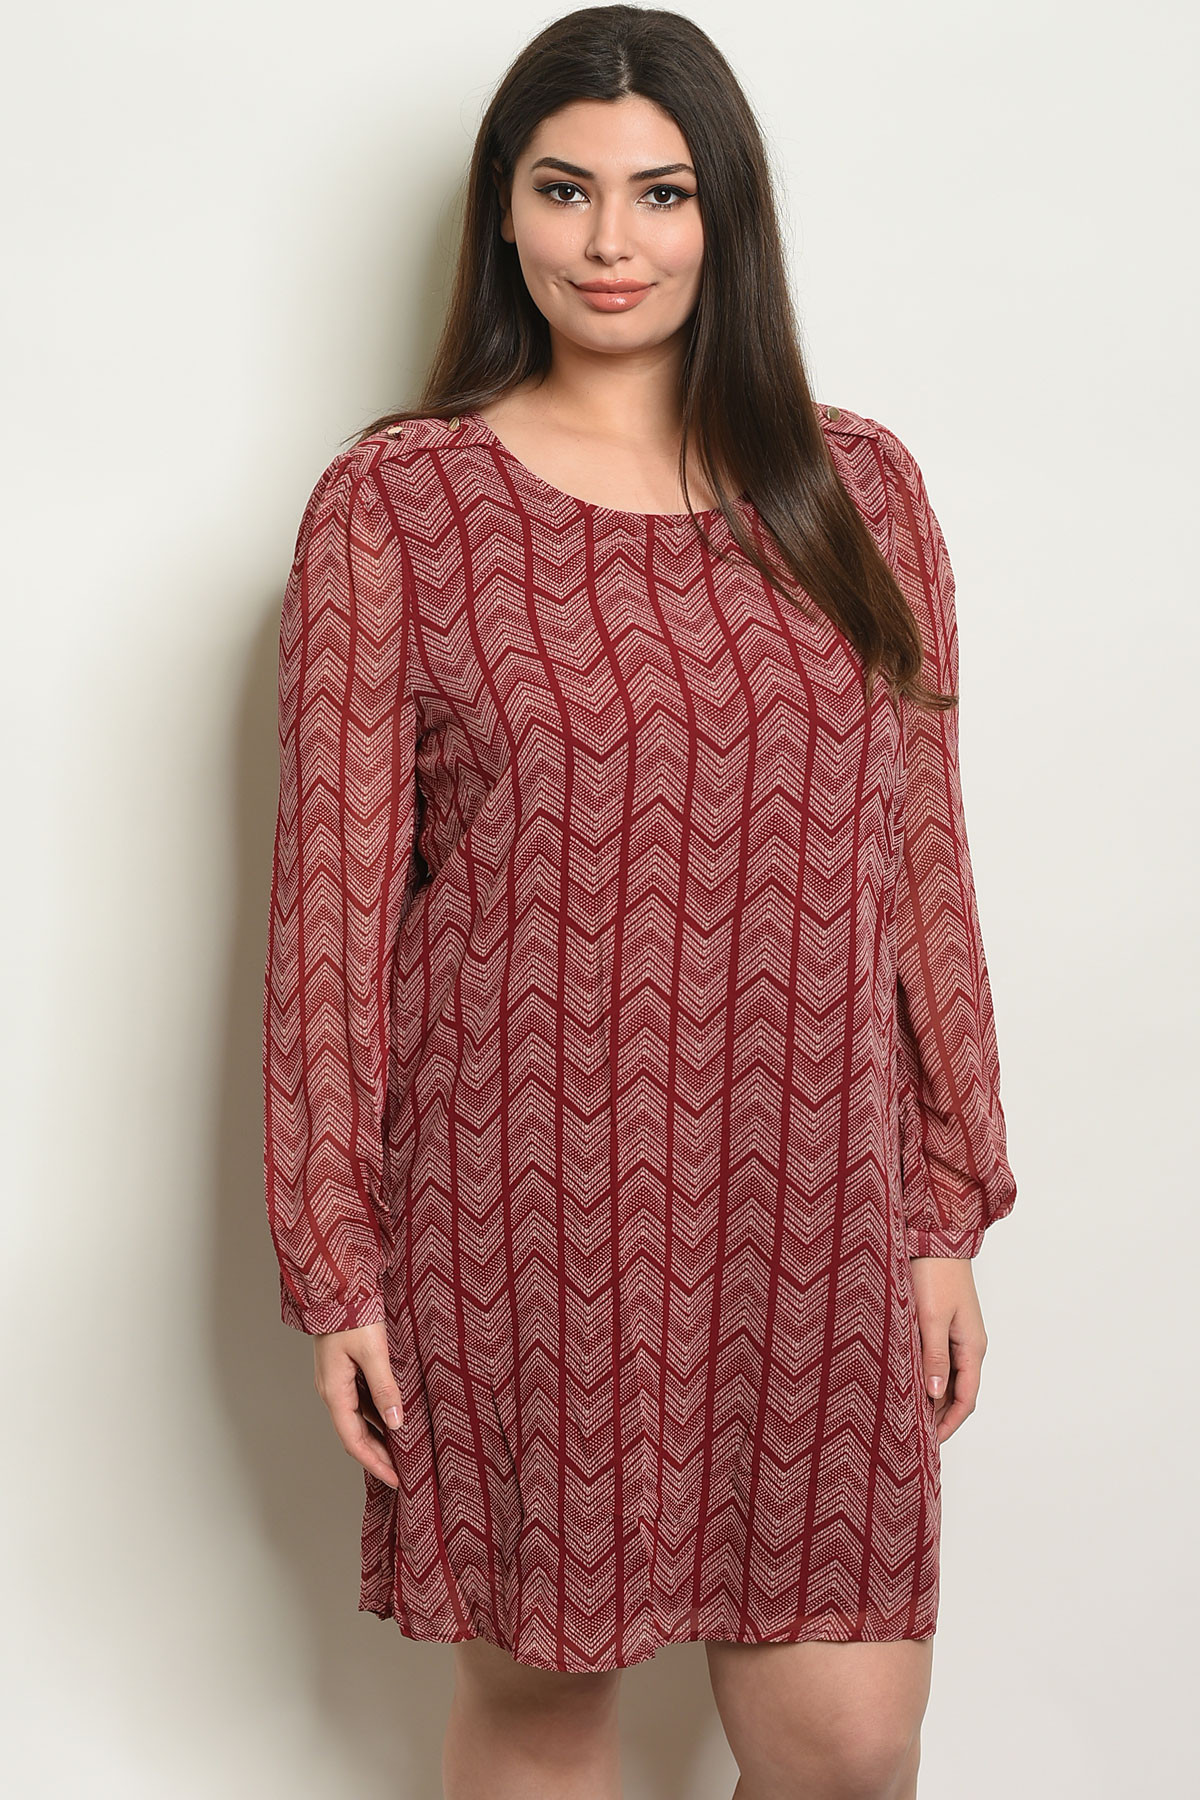 SA4-000-5-D9728X BURGUNDY CREAM PLUS SIZE DRESS 2-2-2